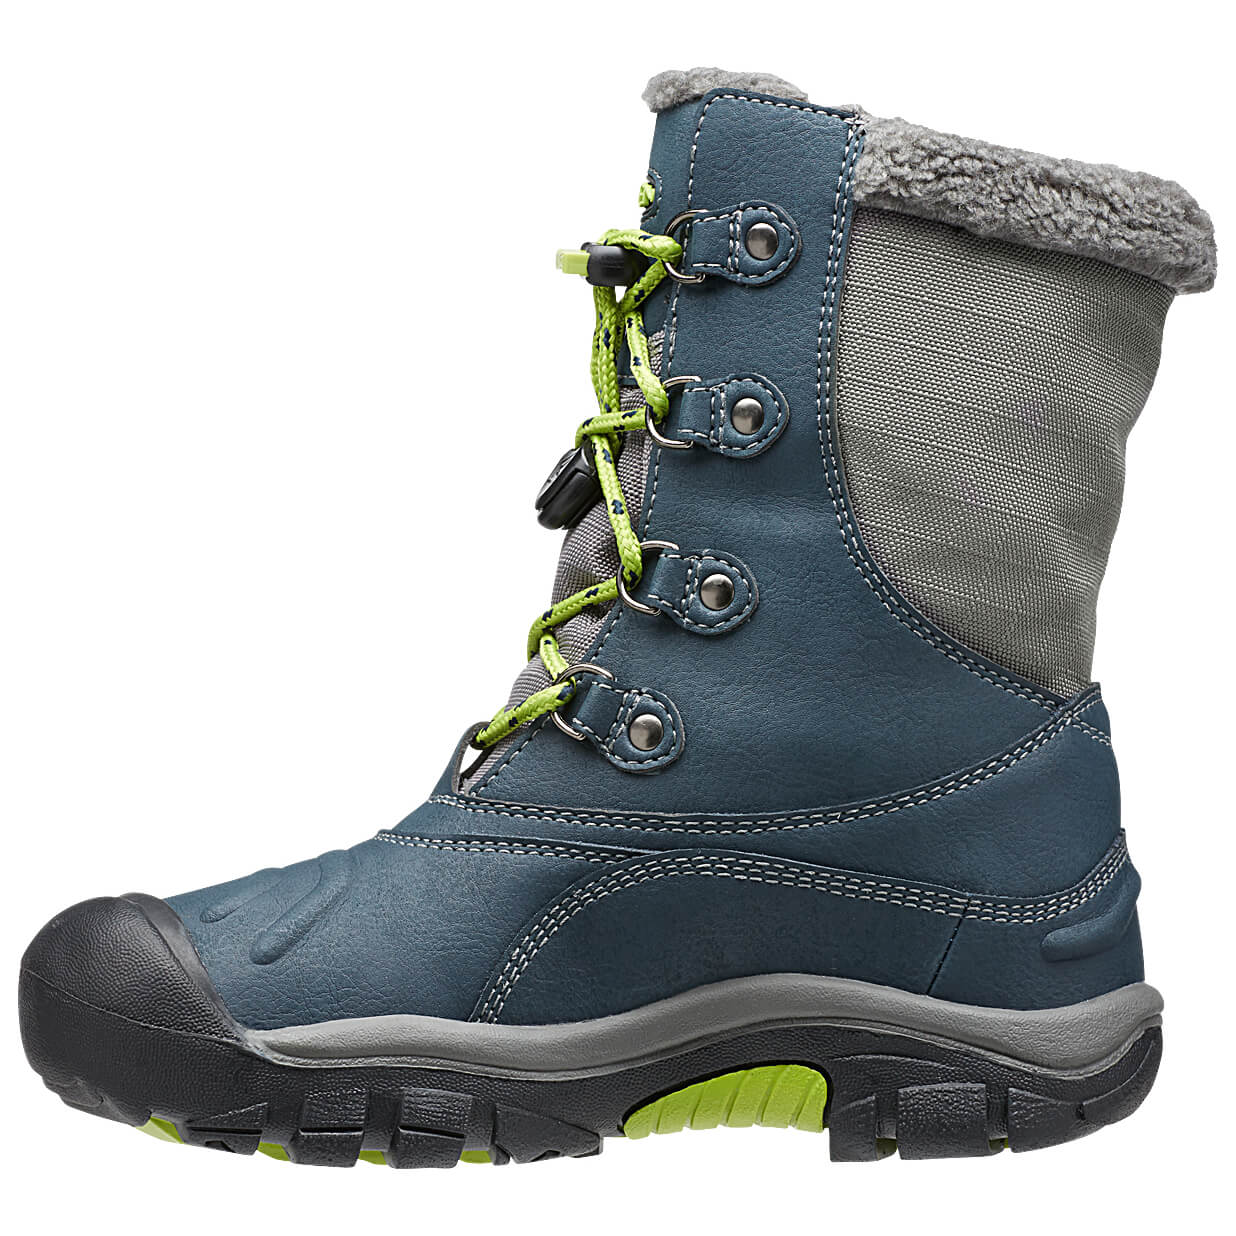 601aa429c63 Keen Basin WP - Winter Boots Kids | Buy online | Alpinetrek.co.uk